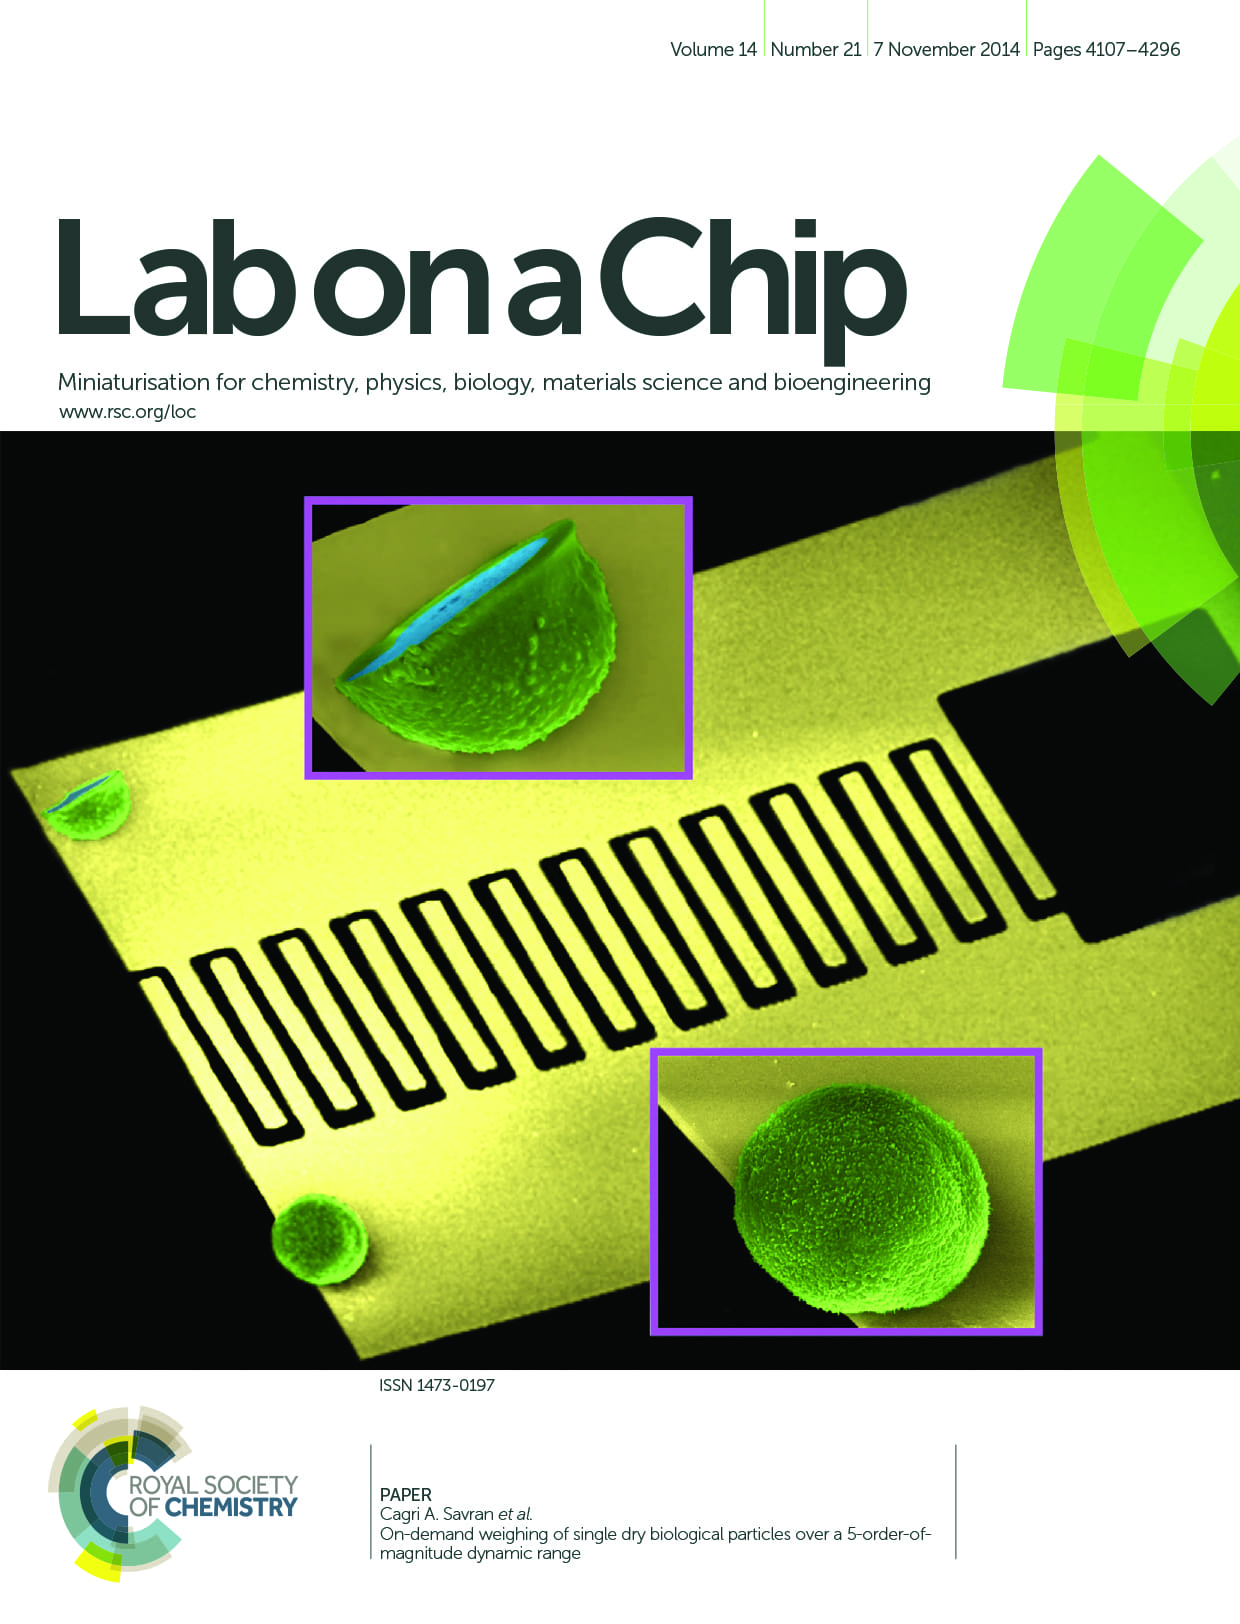 lab on a chip magazine cover